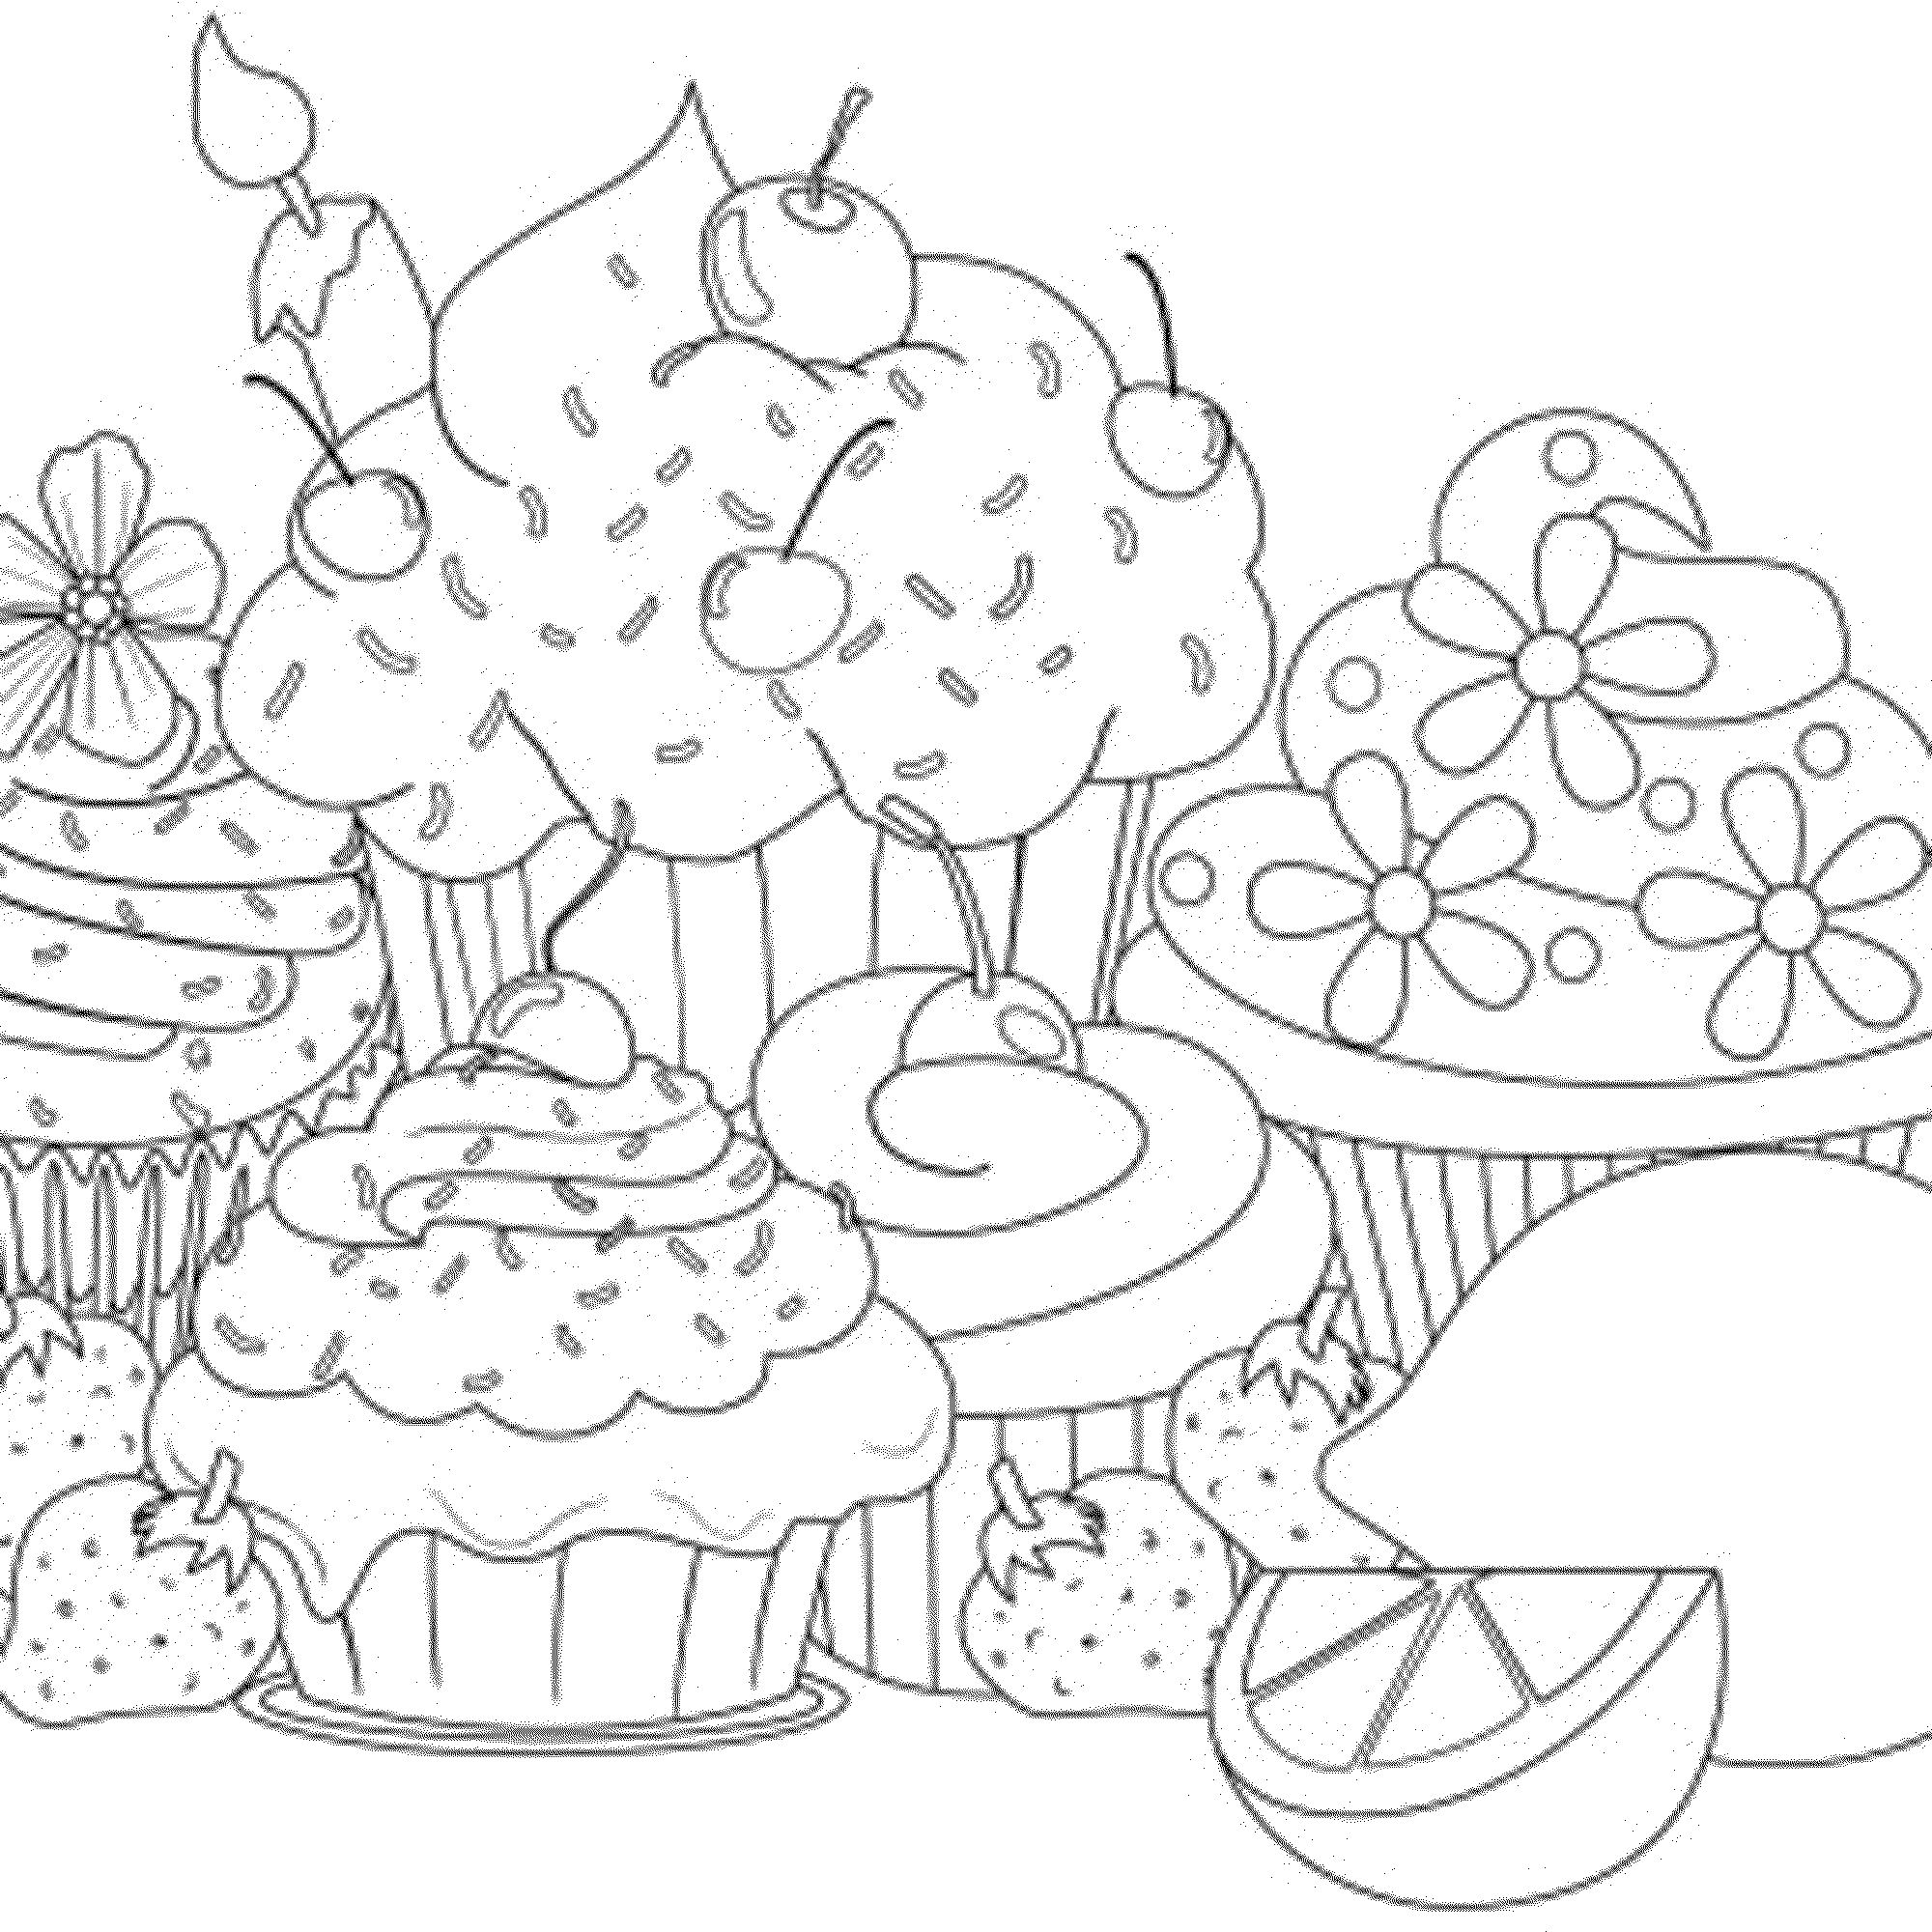 kawaii cupcake coloring pages cute cupcake coloring pages coloring home coloring kawaii cupcake pages